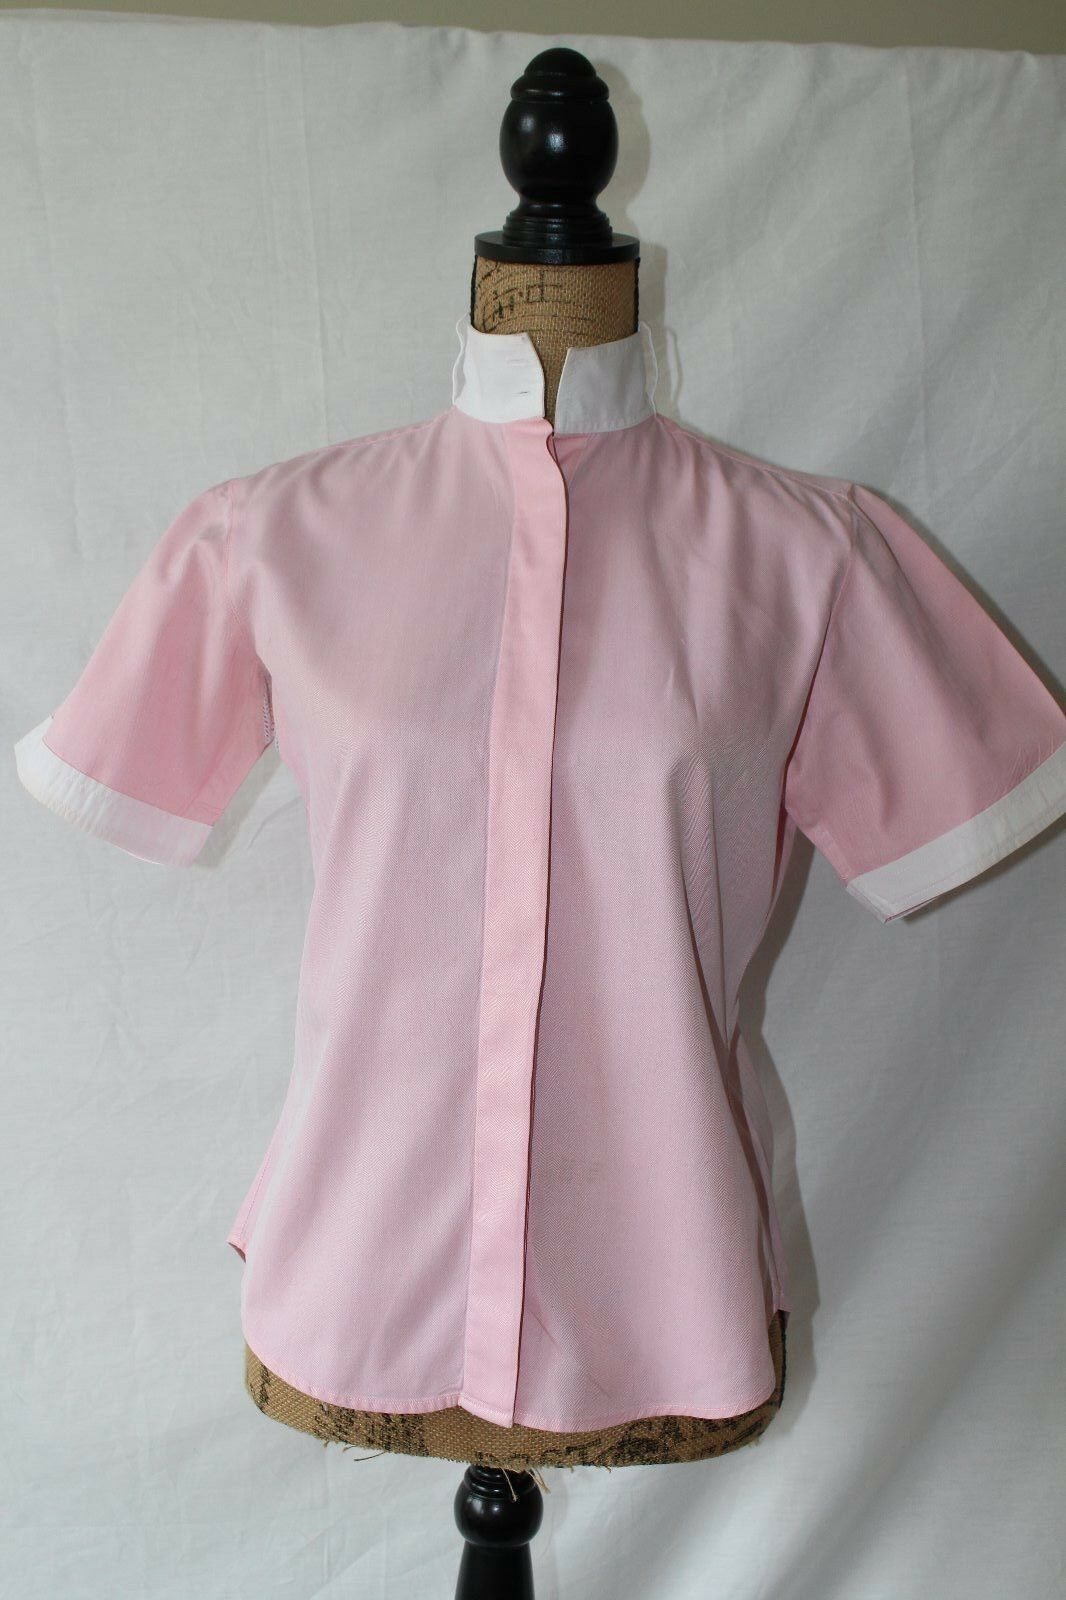 Miku Short Sleeve Pink White Vented Show Shirt Size 32 (US XS 2)